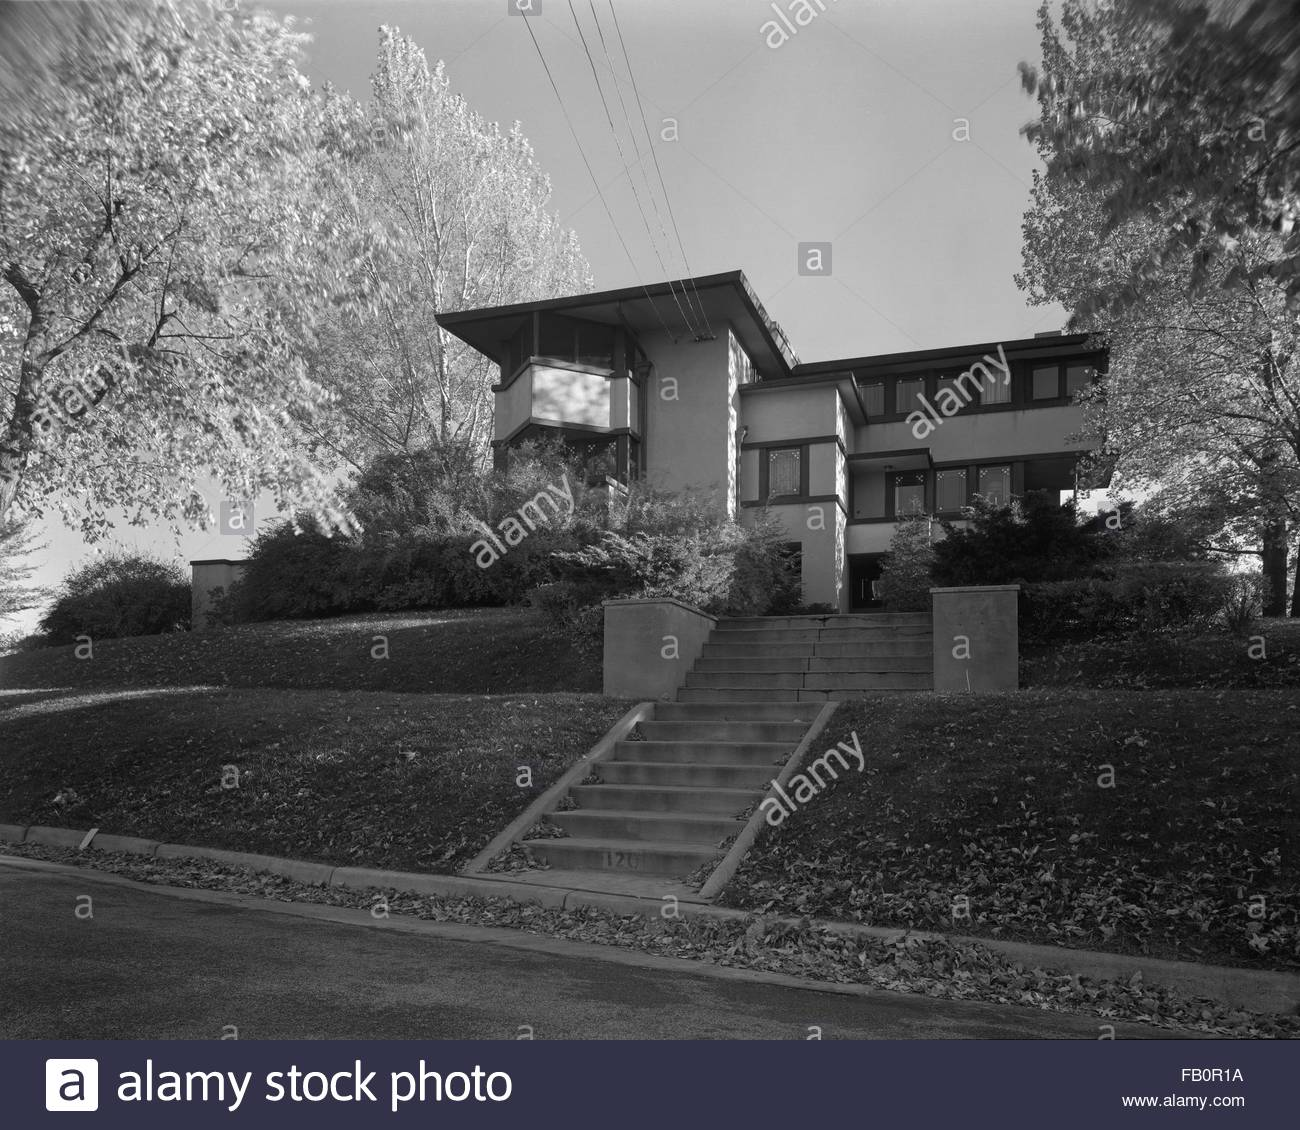 E. A. Gilmore residence in Madison (Wis.), 1937 Dec. Exterior views of the E. A. Gilmore residence at 120 Ely Place - Stock Image